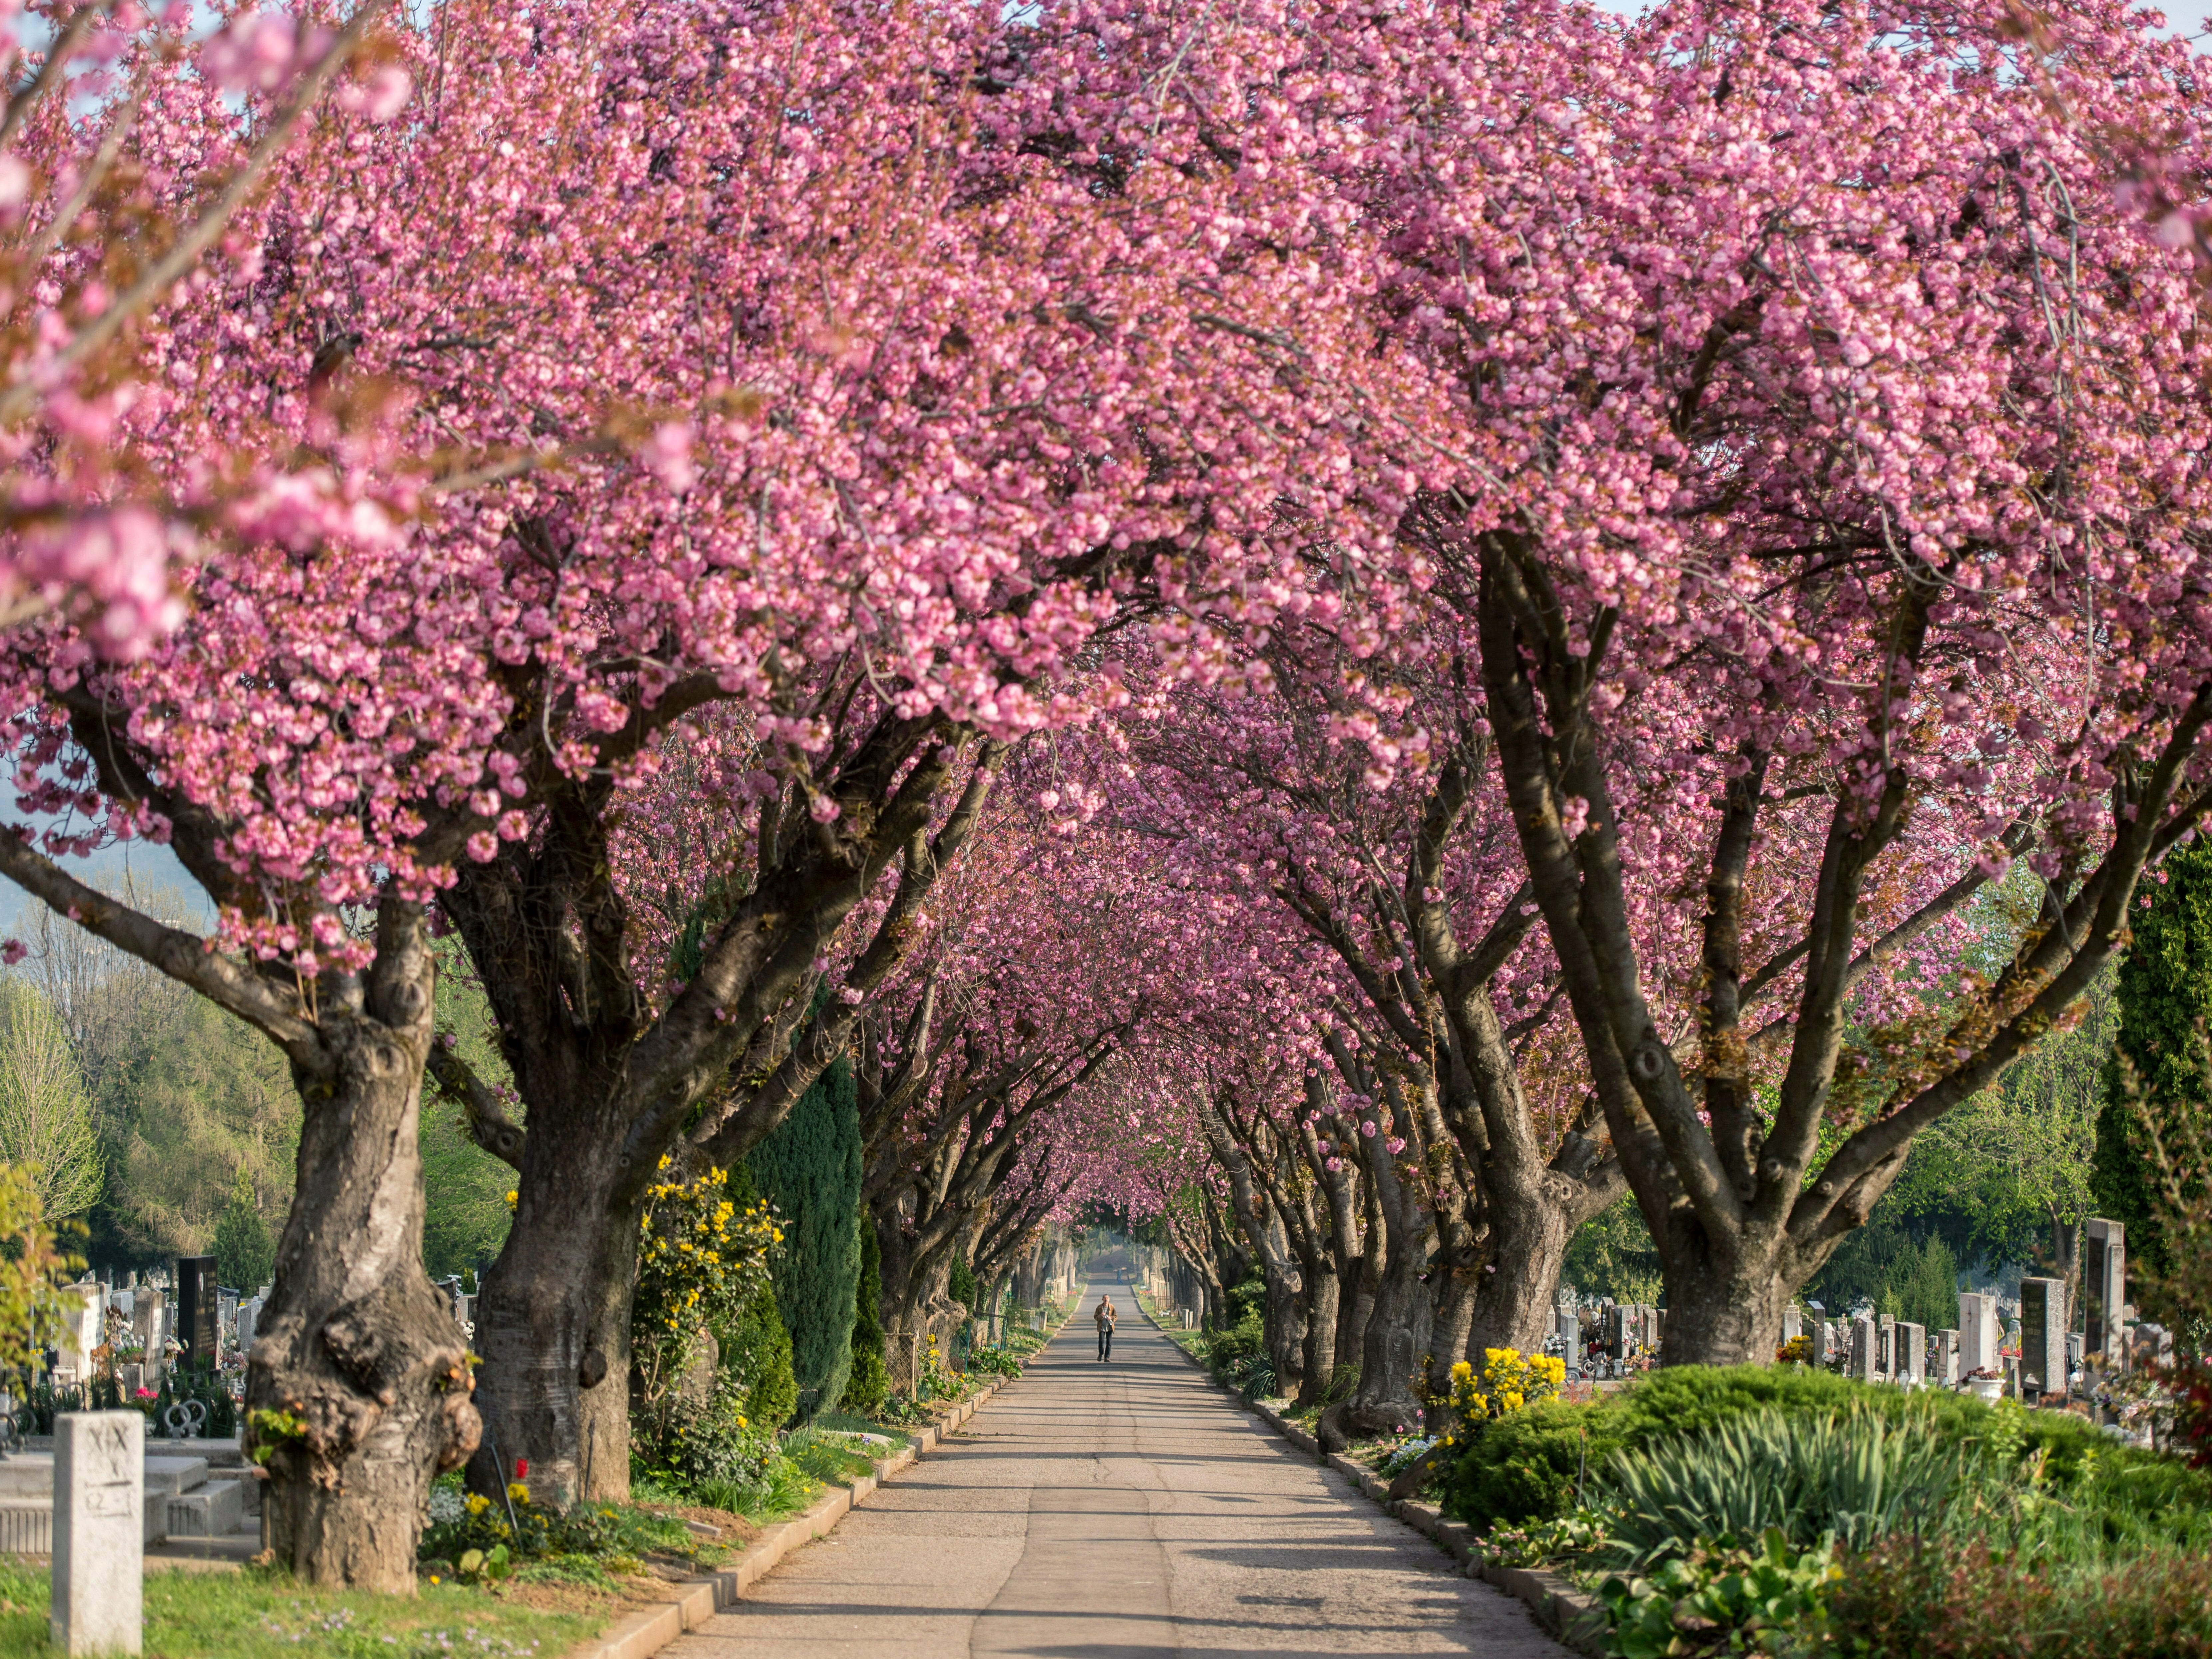 Japanese cherry (Prunus serrulata) trees bloom in the cemetery of Pecs, some 120 miles south of Budapest, Hungary, Tuesday, April 9, 2019, when the daily peak temperature will reach 70 degrees in most regions of the country.